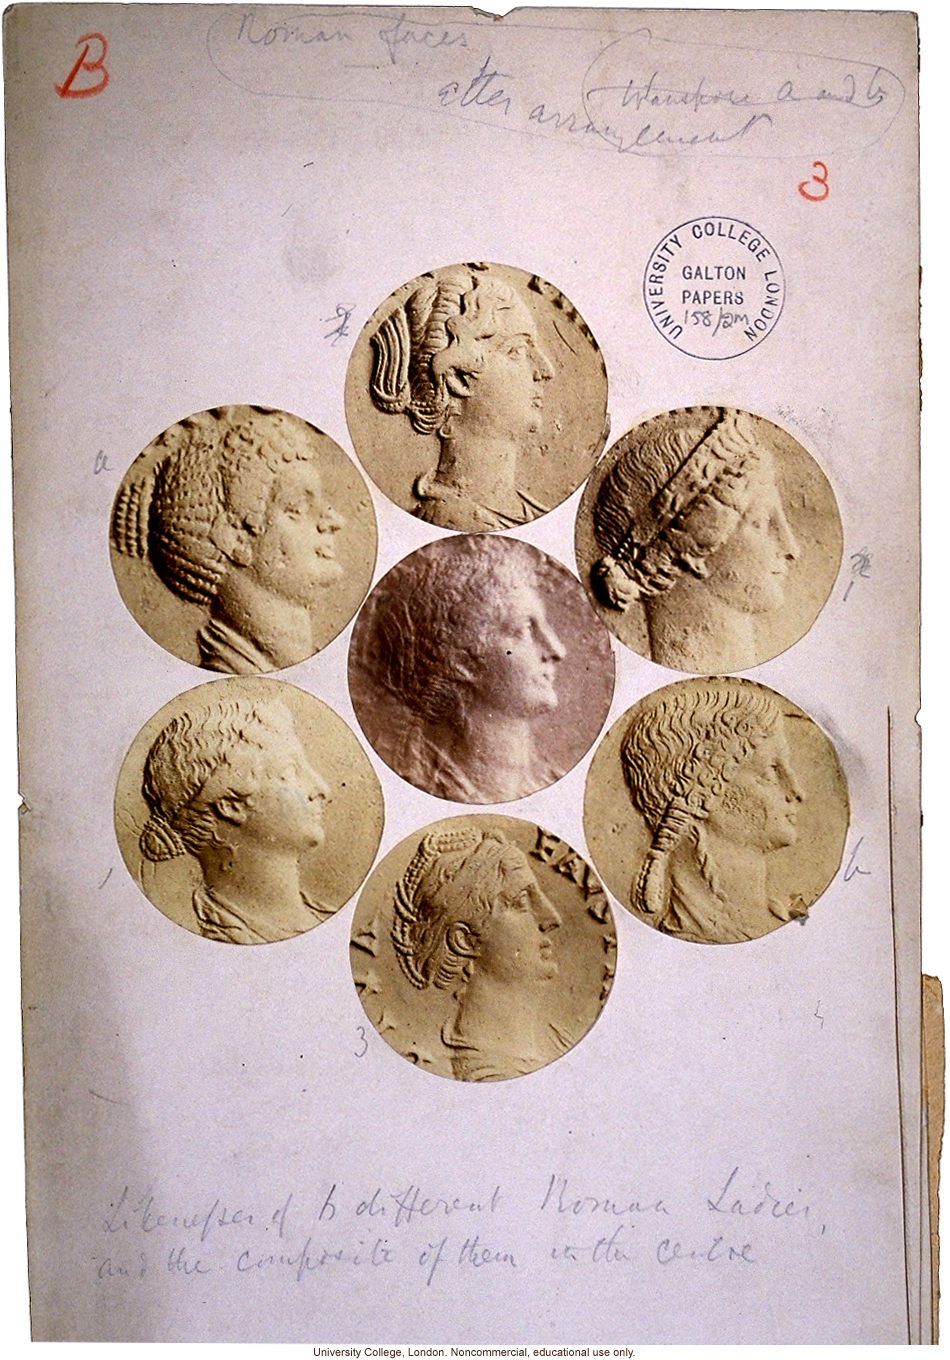 &quote;Likenesses of 6 different Roman Ladies and the composite of them in the centre&quote; (from coins), by Francis Galton